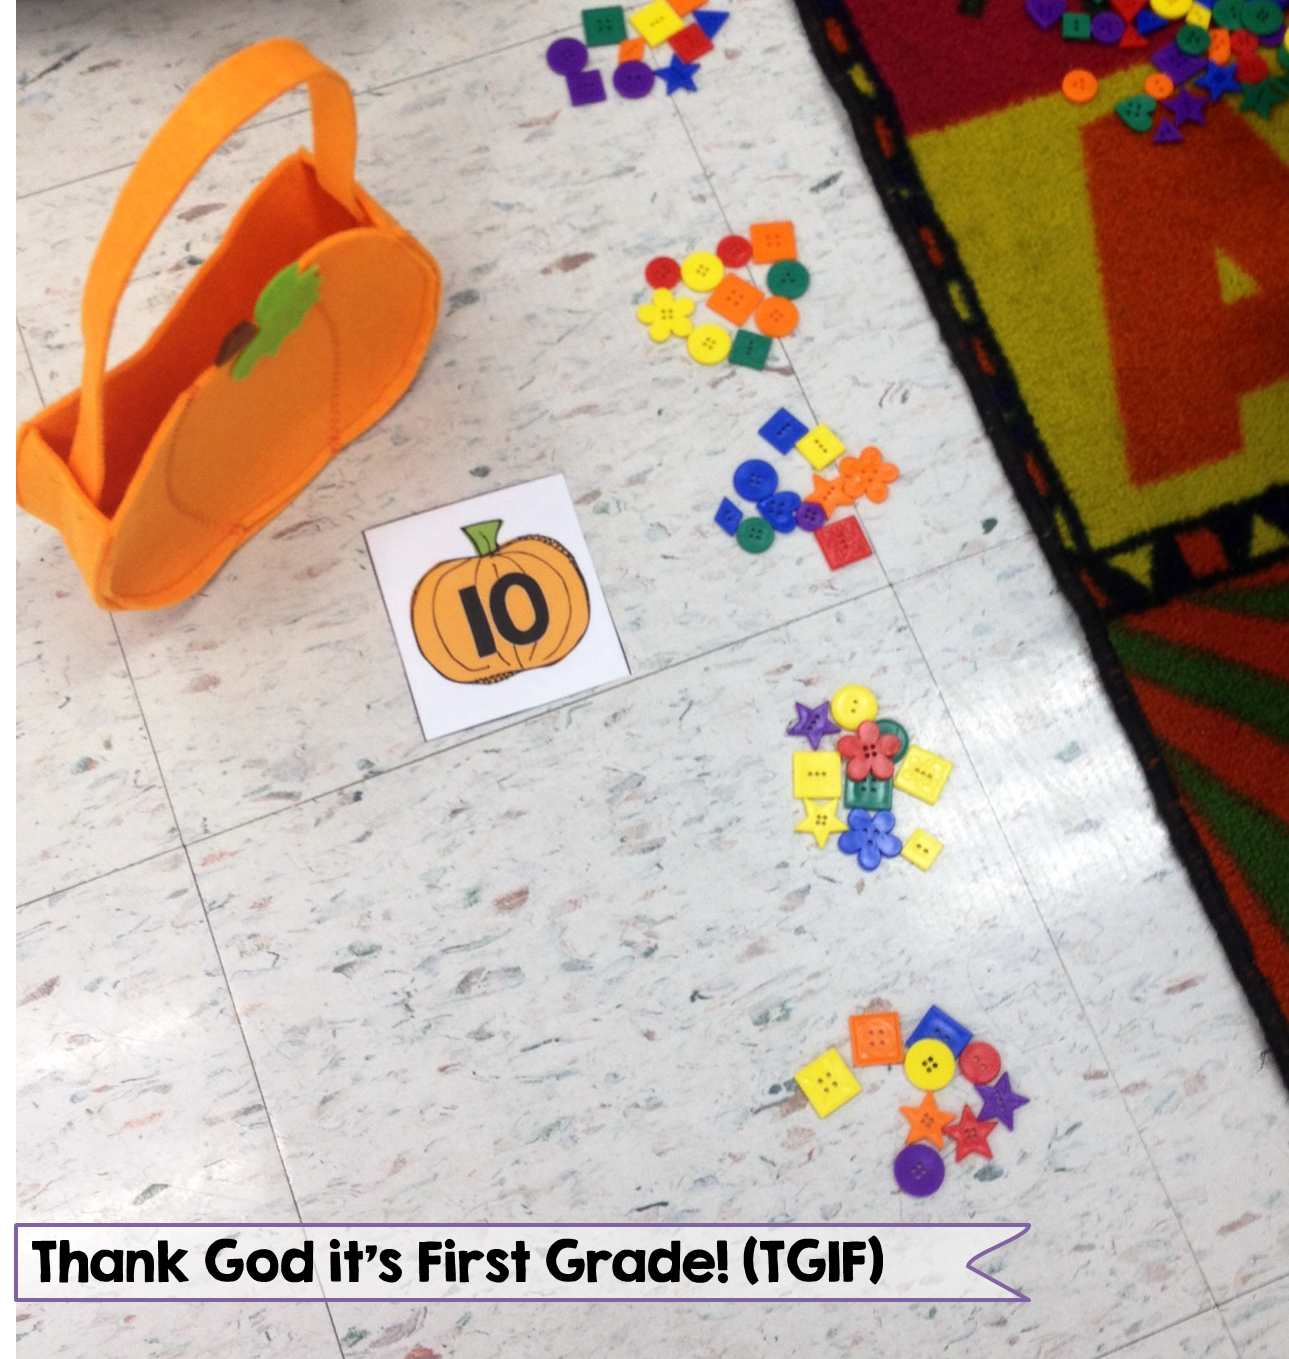 Counting By 2s 5s And 10s